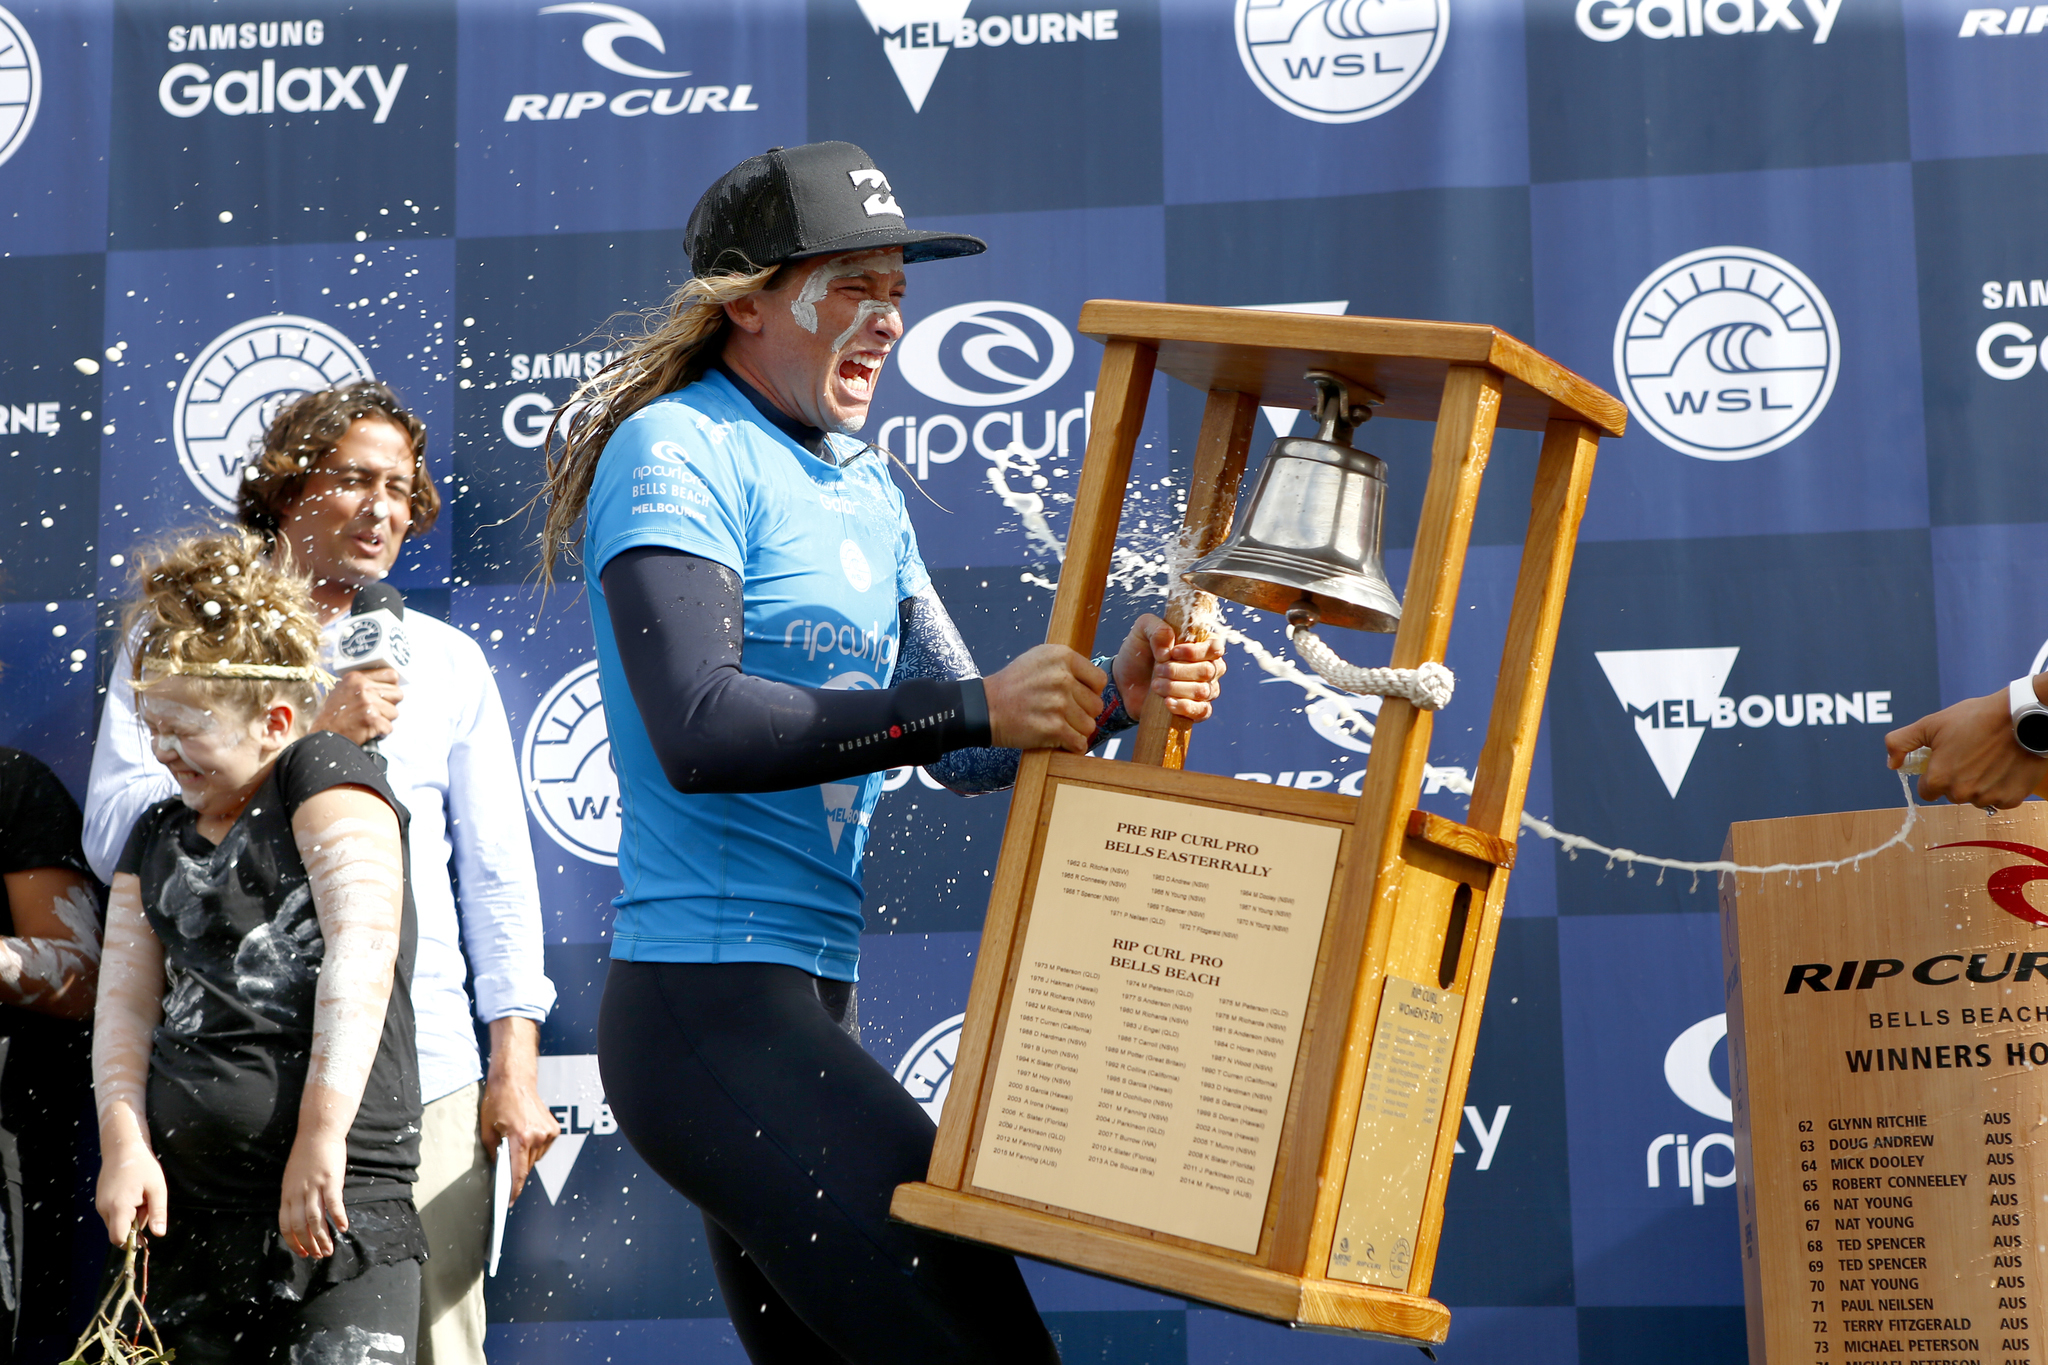 Courtney Conlogue of the USA (pictured) rings the bell at the Rip Curl Pro Bells Beach on Friday April 1, 2016. PHOTO: © WSL/ Cestari SOCIAL: @kc80 This image is the copyright of the World Surf League and is provided royalty free for editorial use only, in all media now known or hereafter created. No commercial rights granted. Sale or license of the images is prohibited. This image is a factually accurate rendering of what it depicts and has not been modified or augmented except for standard cropping and toning. ALL RIGHTS RESERVED.